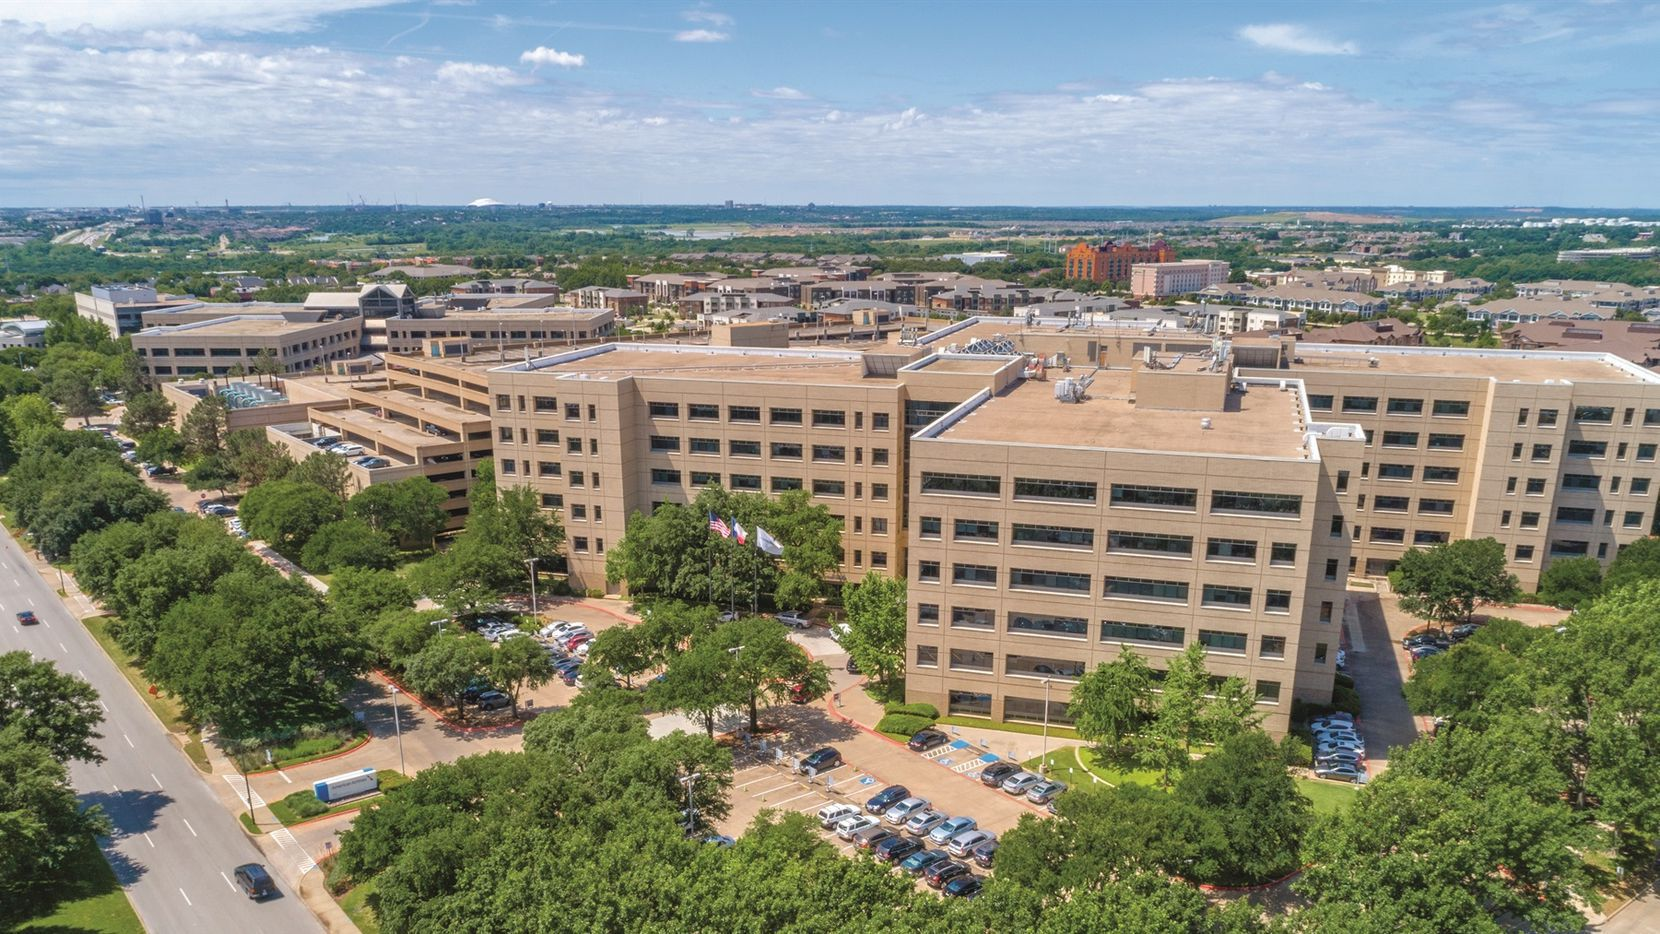 The 40-acre former American Airlines campus includes almost 1.4 million square feet of offices.